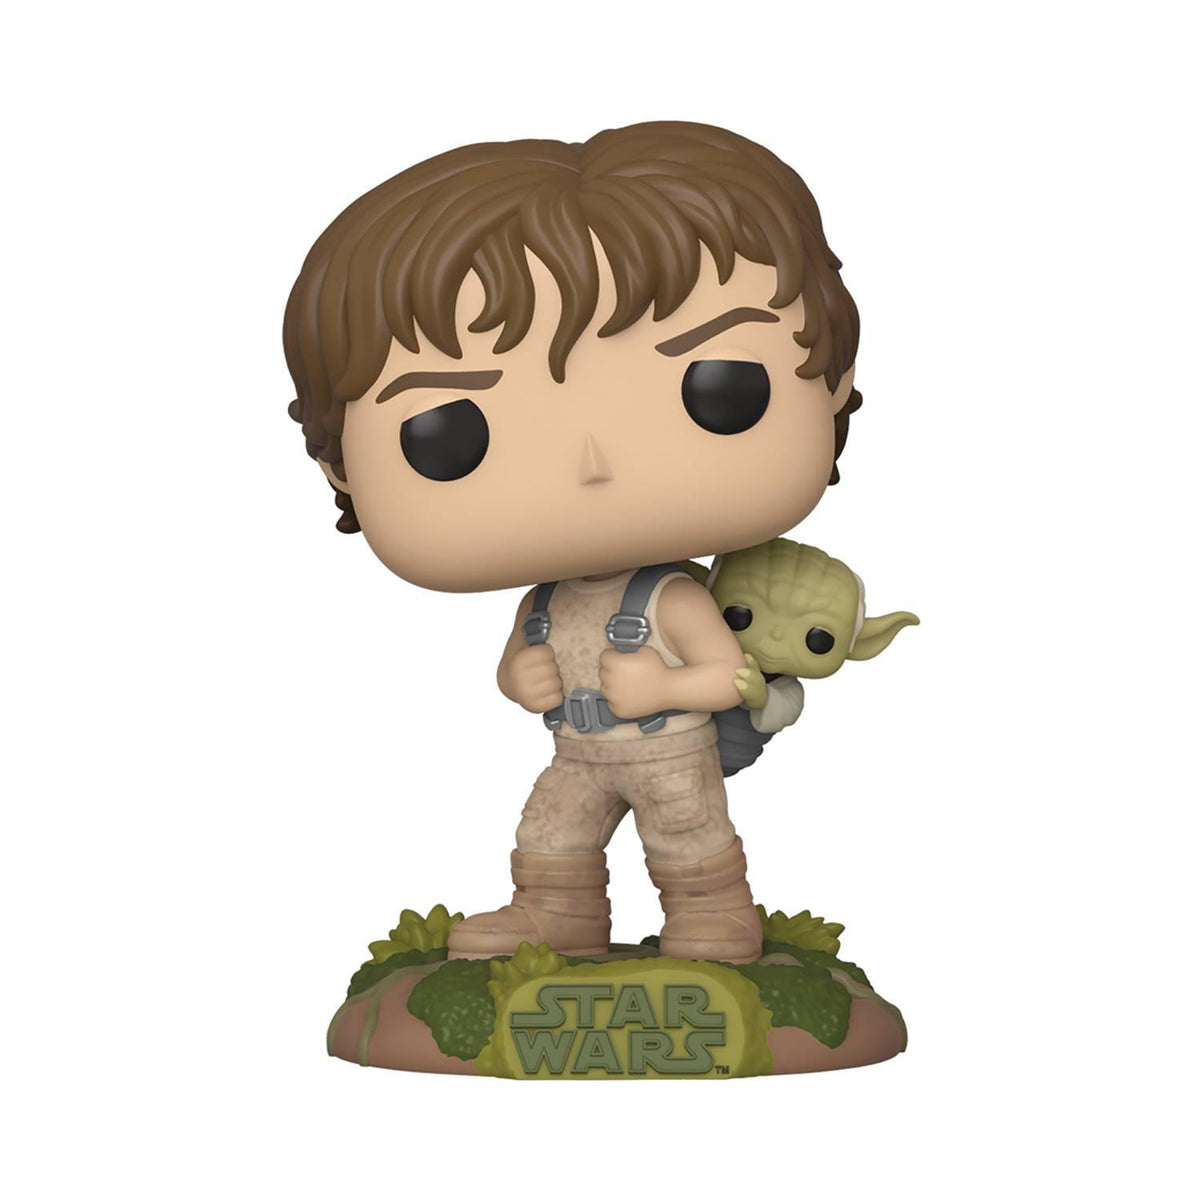 POP VINYL STAR WARS TRAINING LUKE WITH YODA VINYL FIGURE